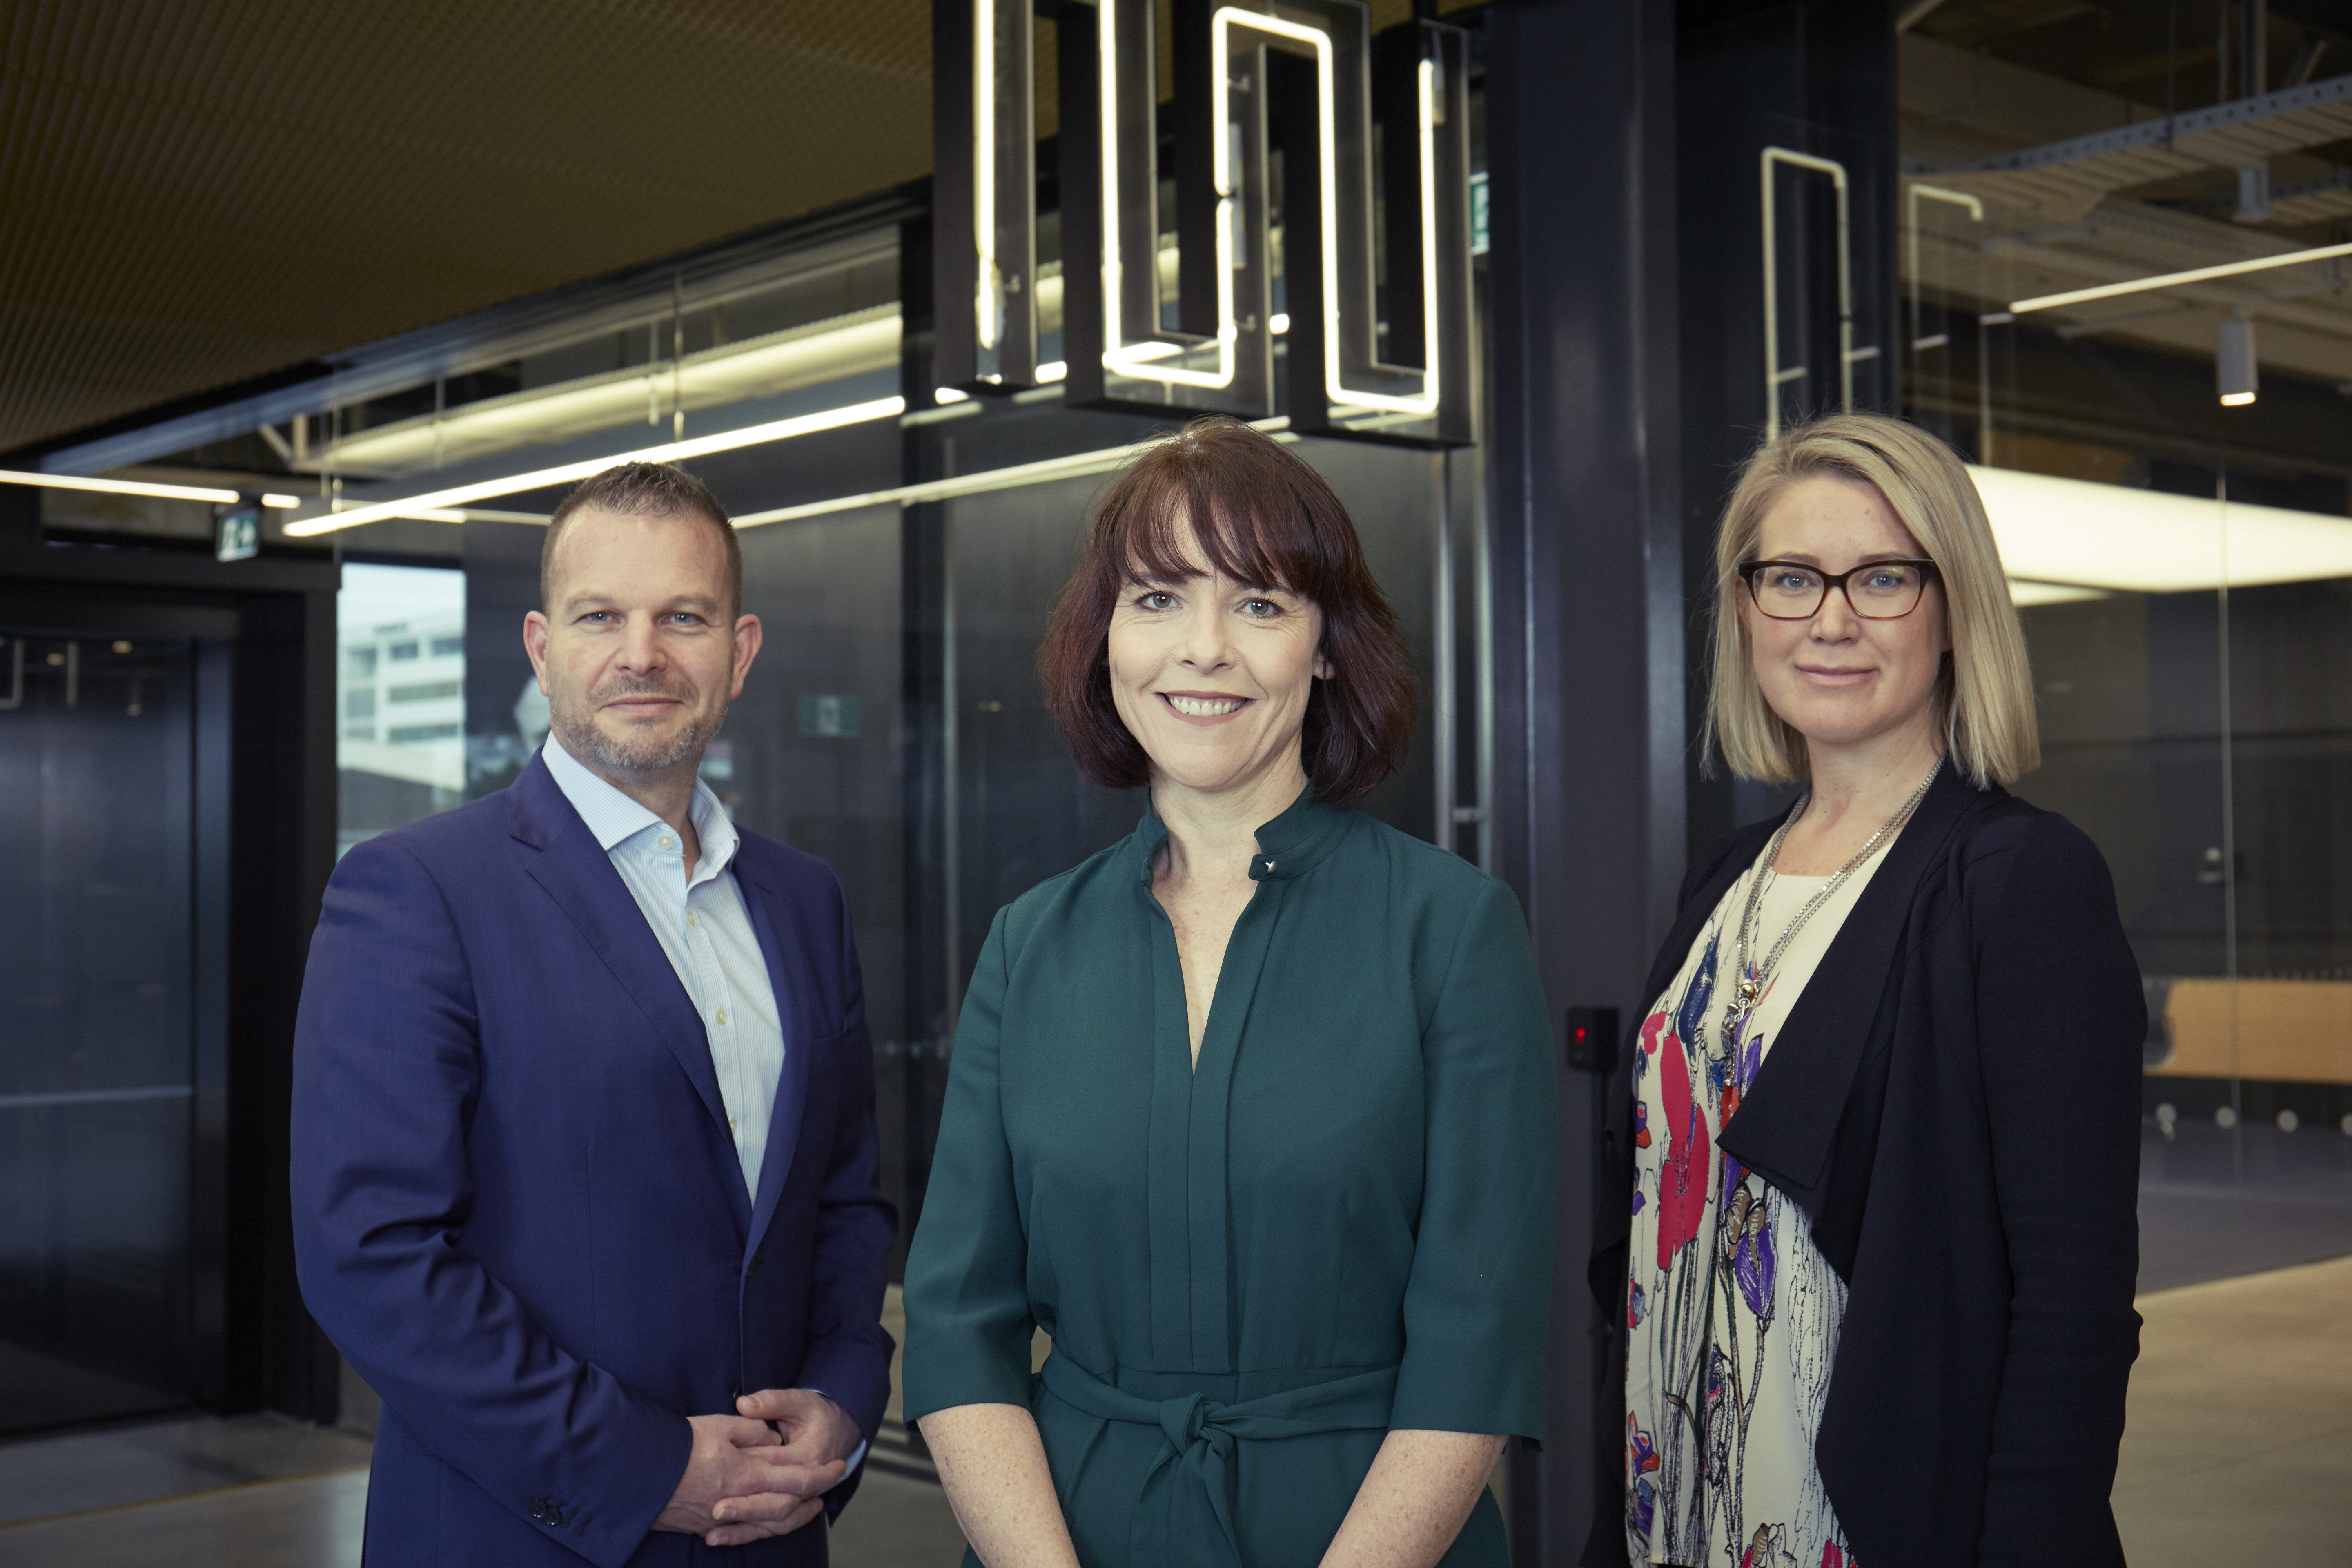 Executive trio to assist growth in New Zealand and Asia Pacific Region